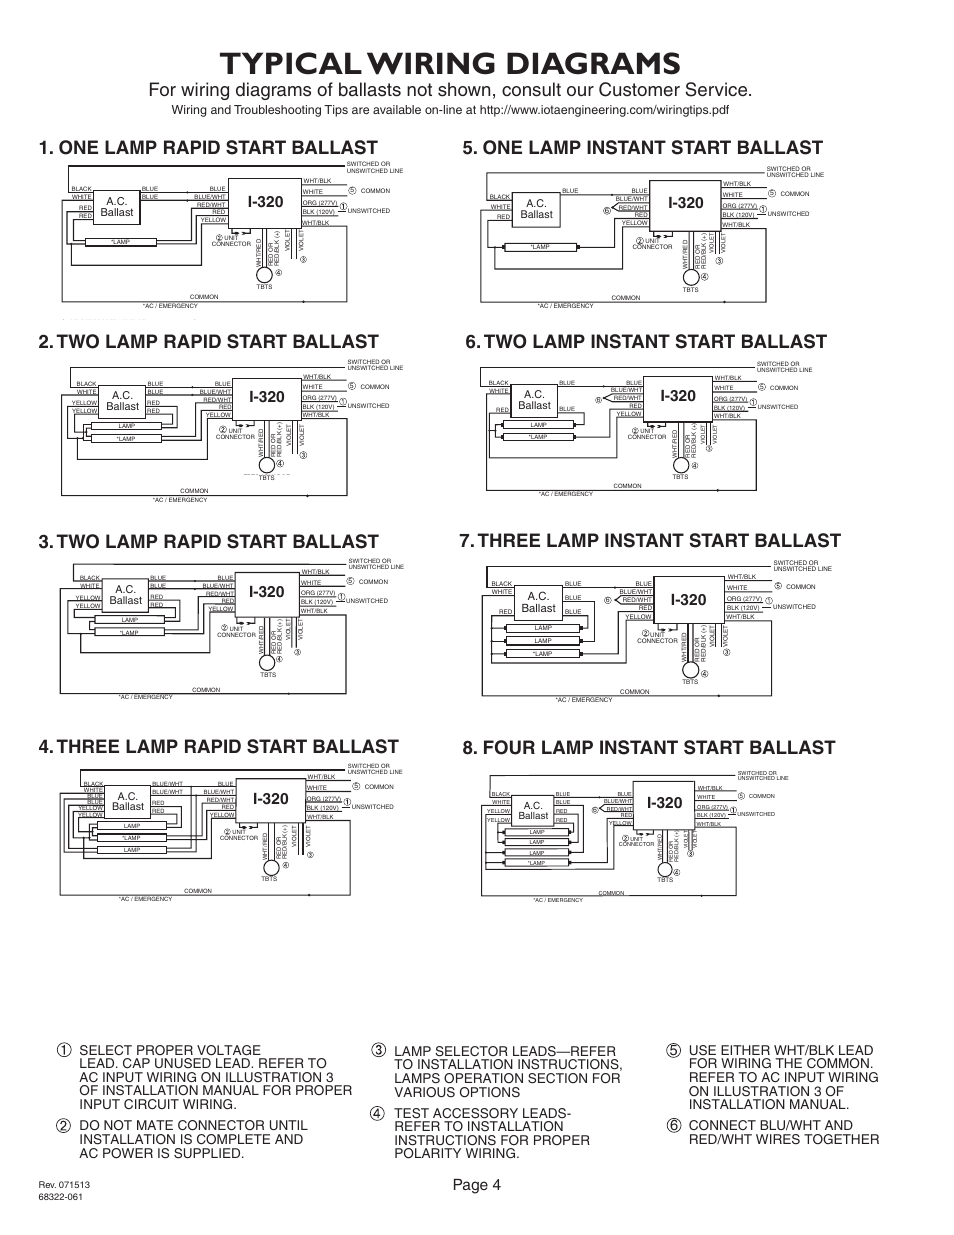 iota i 320 page4 eb60 emergency ballasts wiring diagram diagram wiring diagrams  at webbmarketing.co